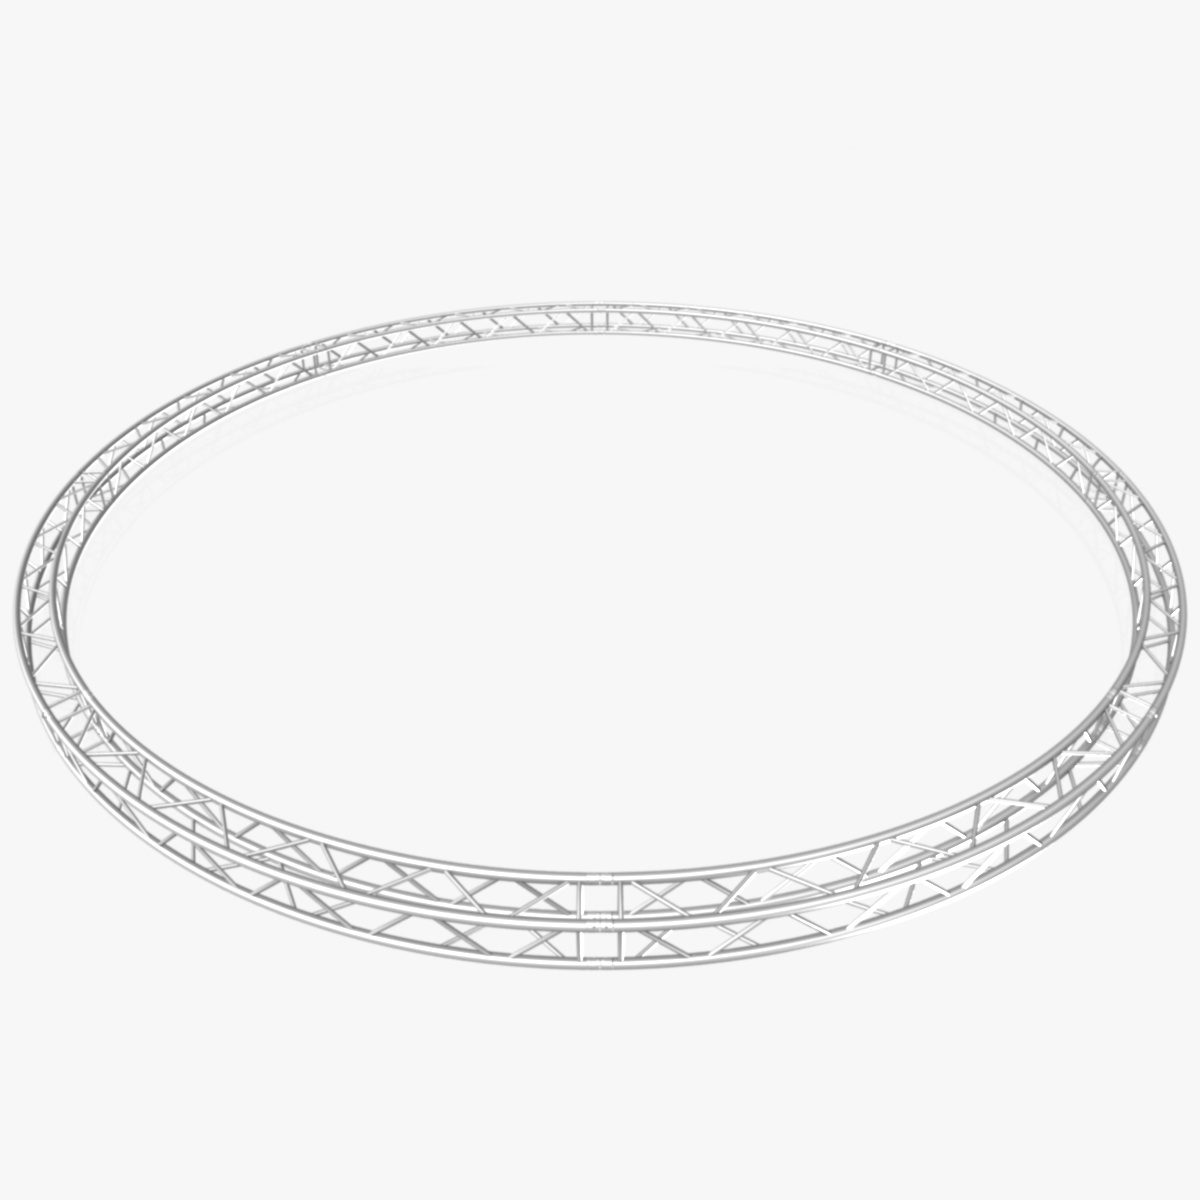 circle square truss (full diameter 800cm) 3d model 3ds max dxf fbx c4d dae  obj 253110